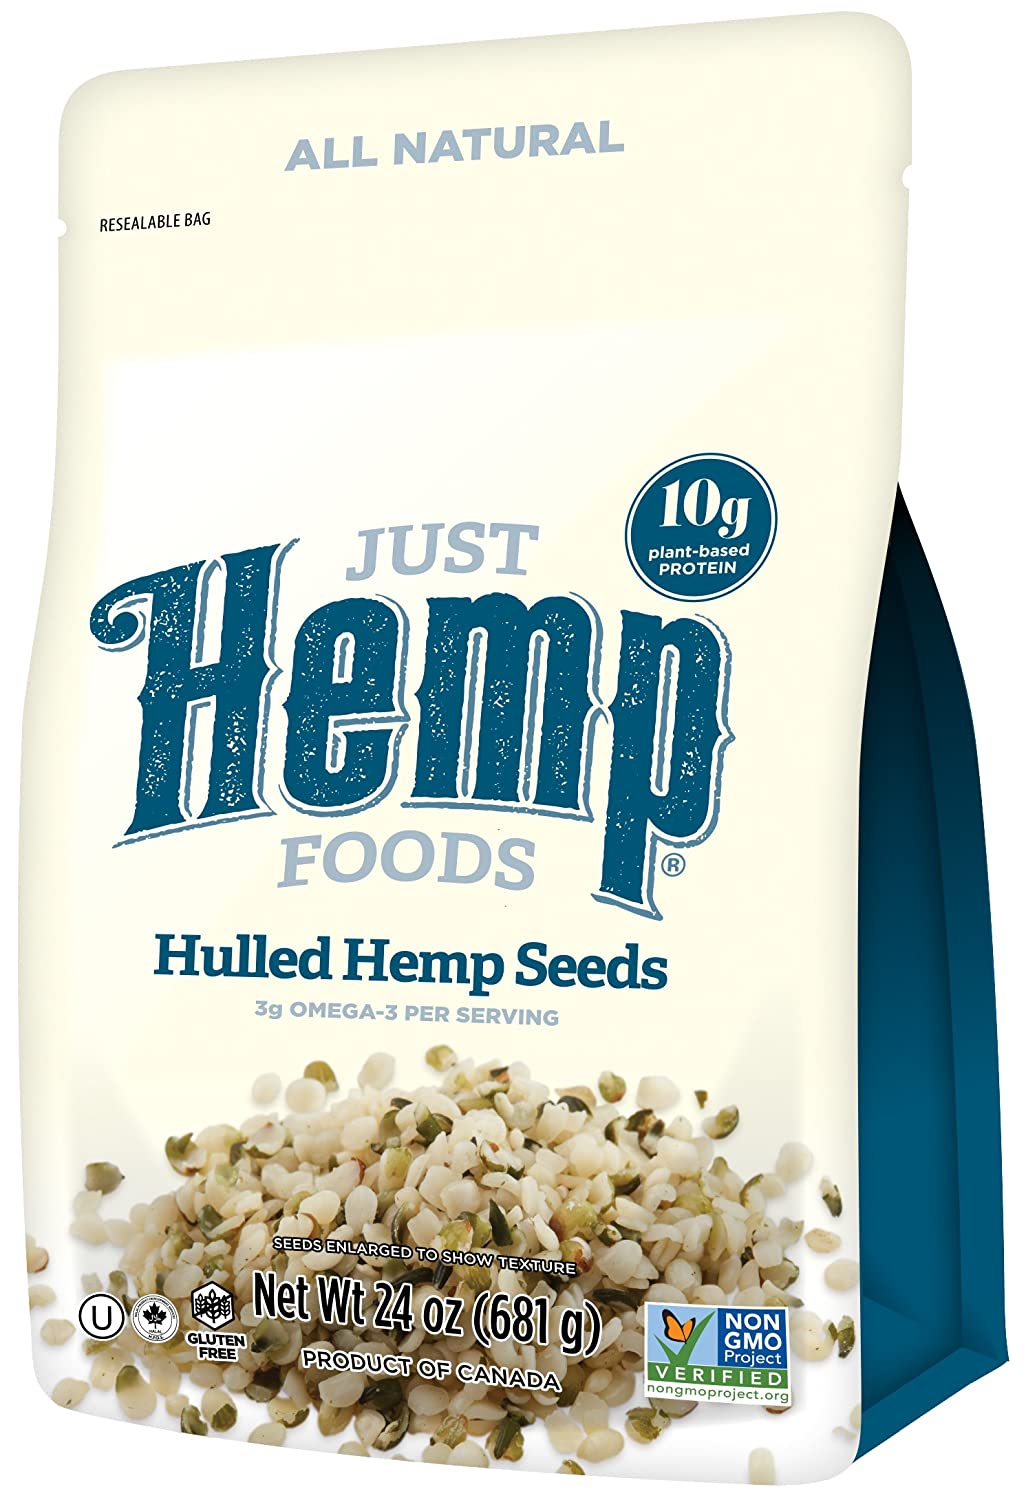 what are hulled hemp seeds